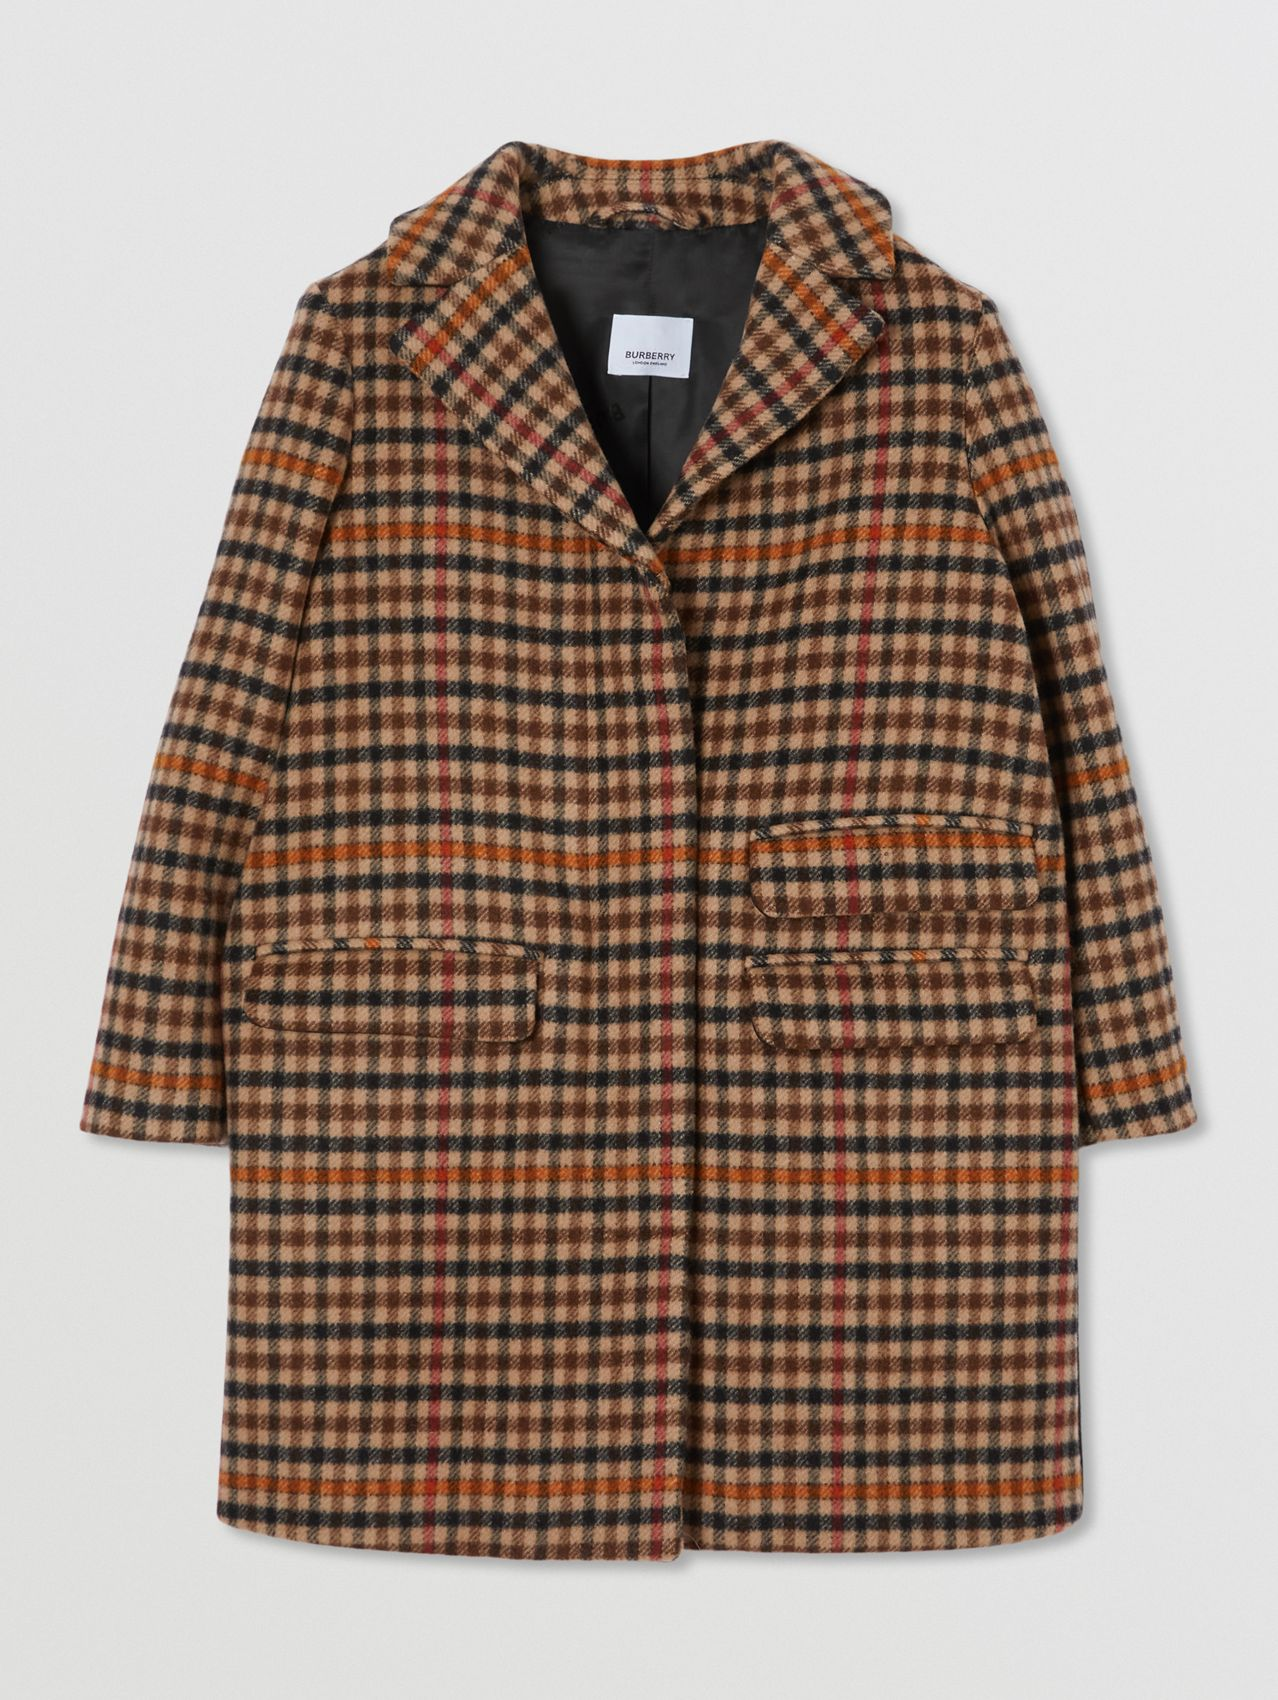 Embroidered Monogram Motif Check Wool Tailored Coat in Camel